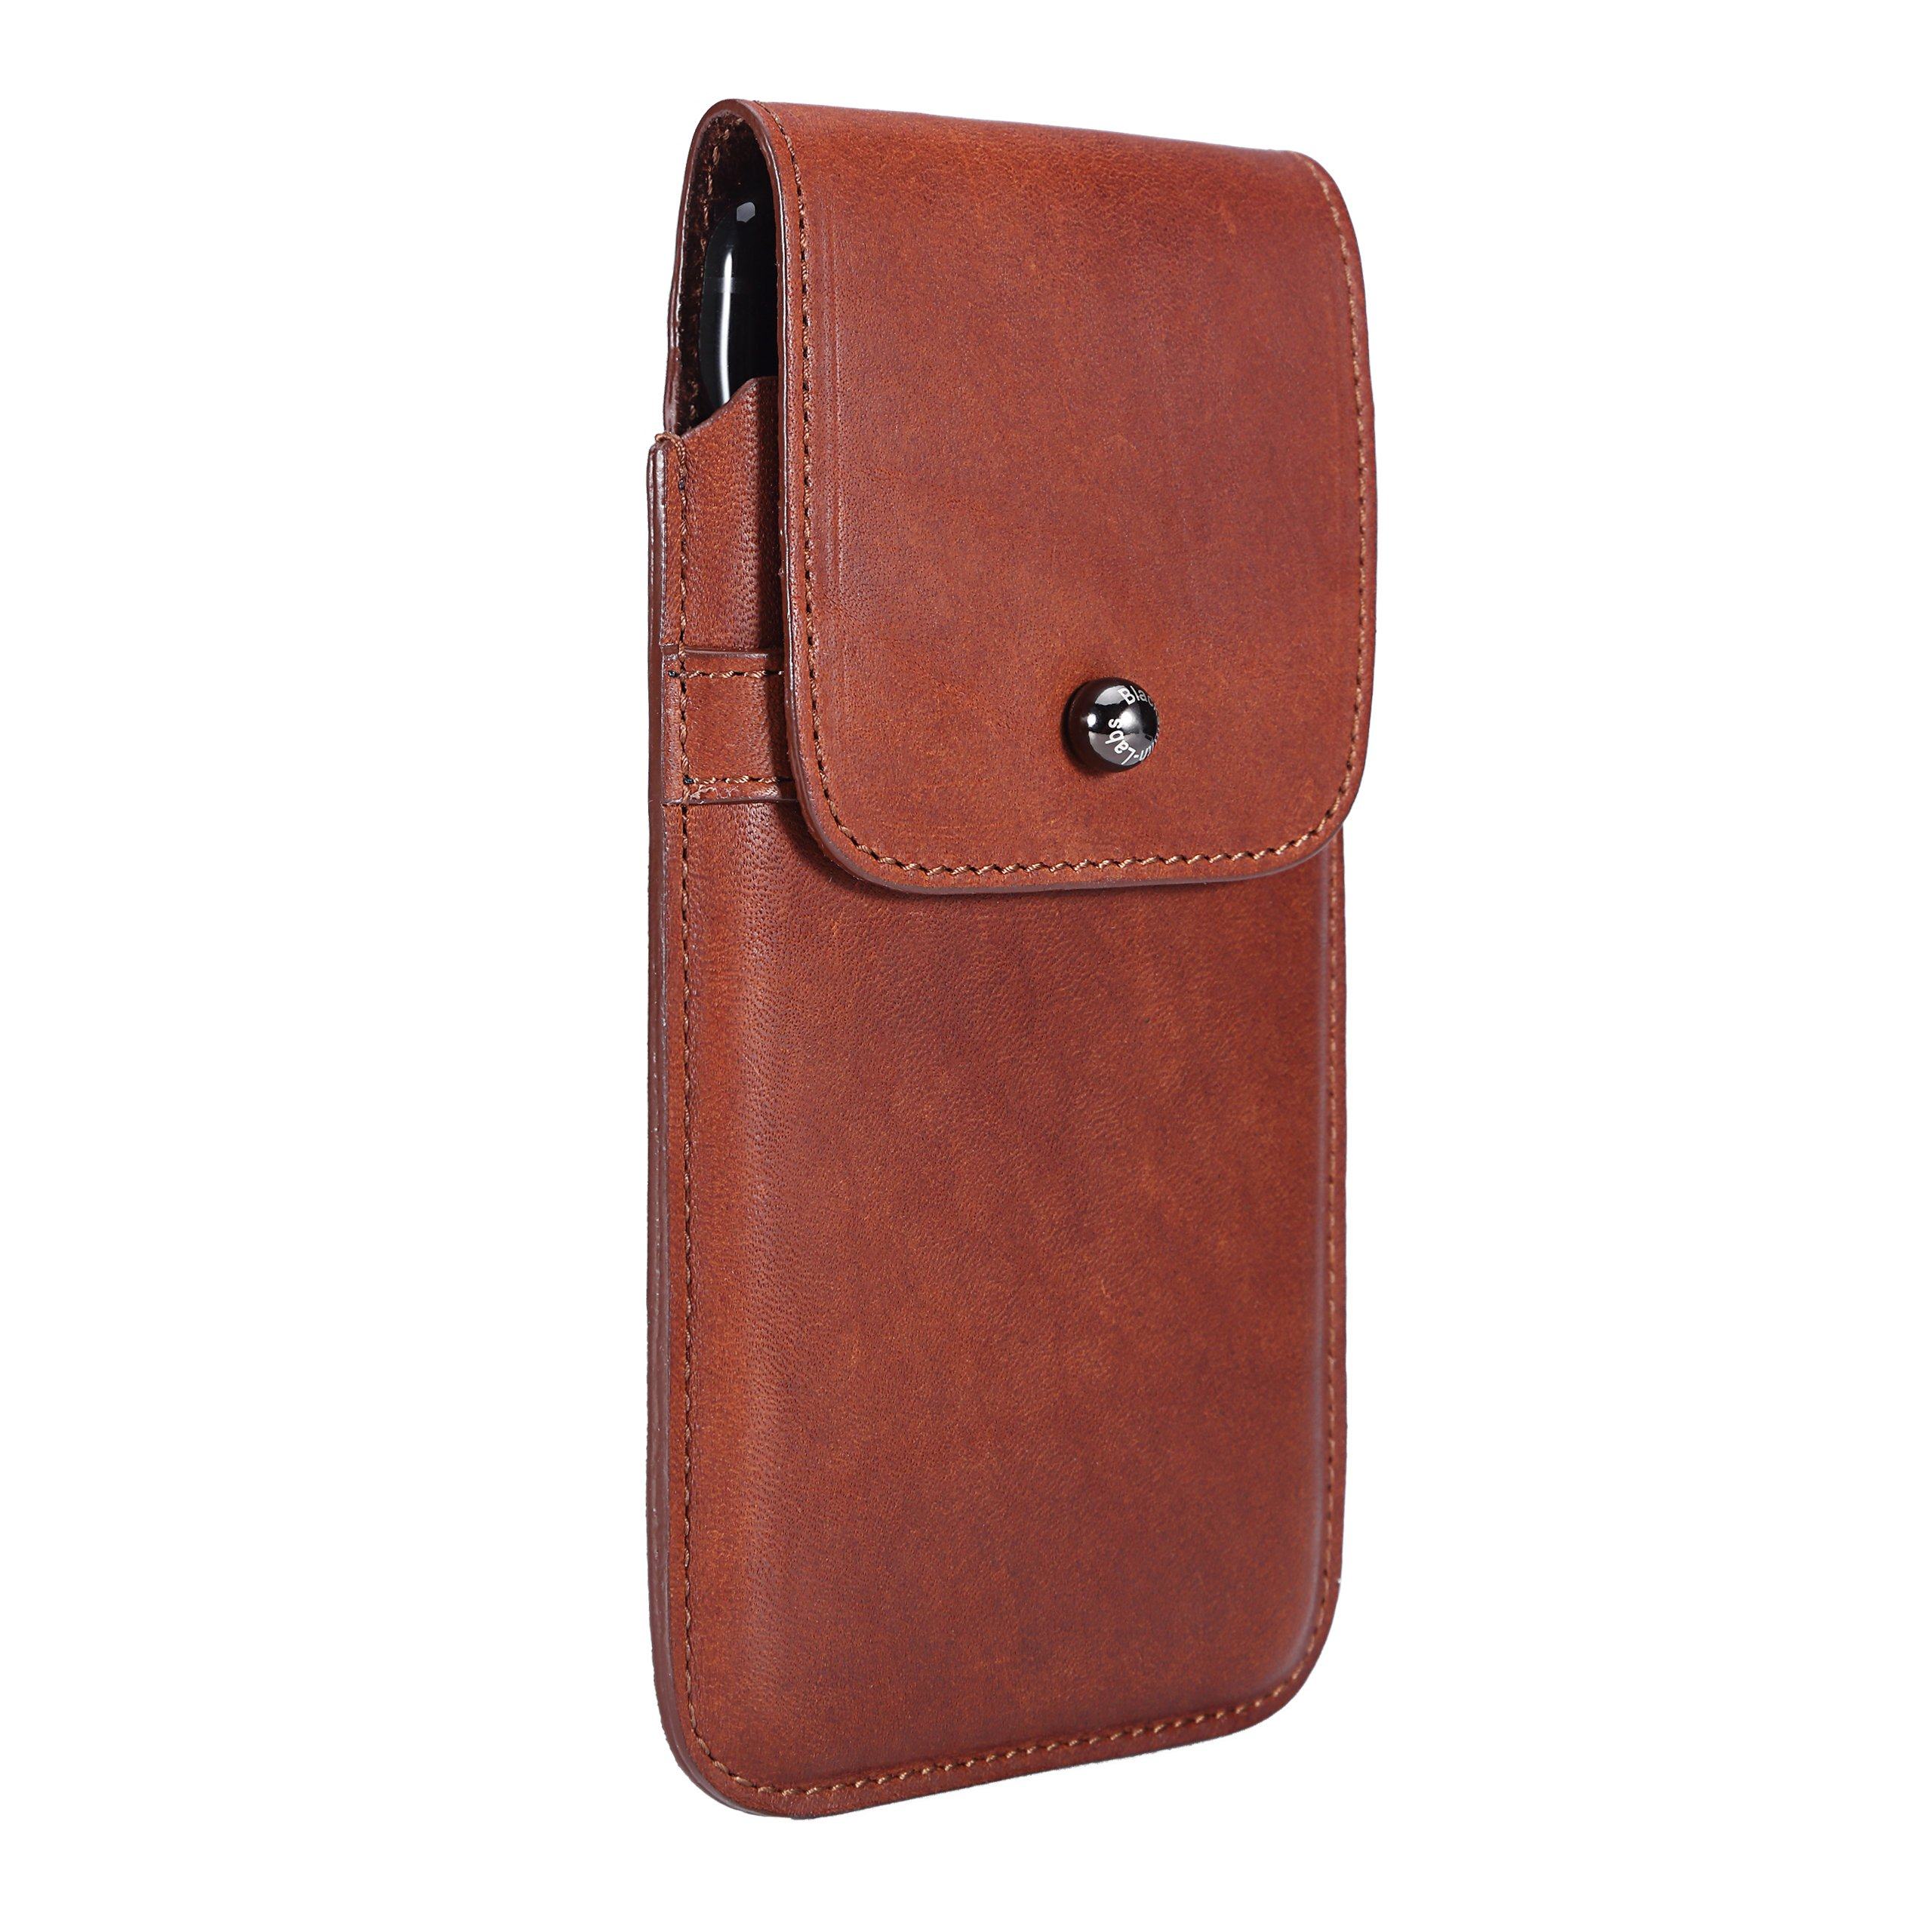 Limited Edition: Blacksmith-Labs Barrett 2017 Premium Leather Swivel Belt Clip Holster for Apple iPhone 7 Plus for use with No Case - Horween Essex Dark Cognac/Gunmetal Belt Clip